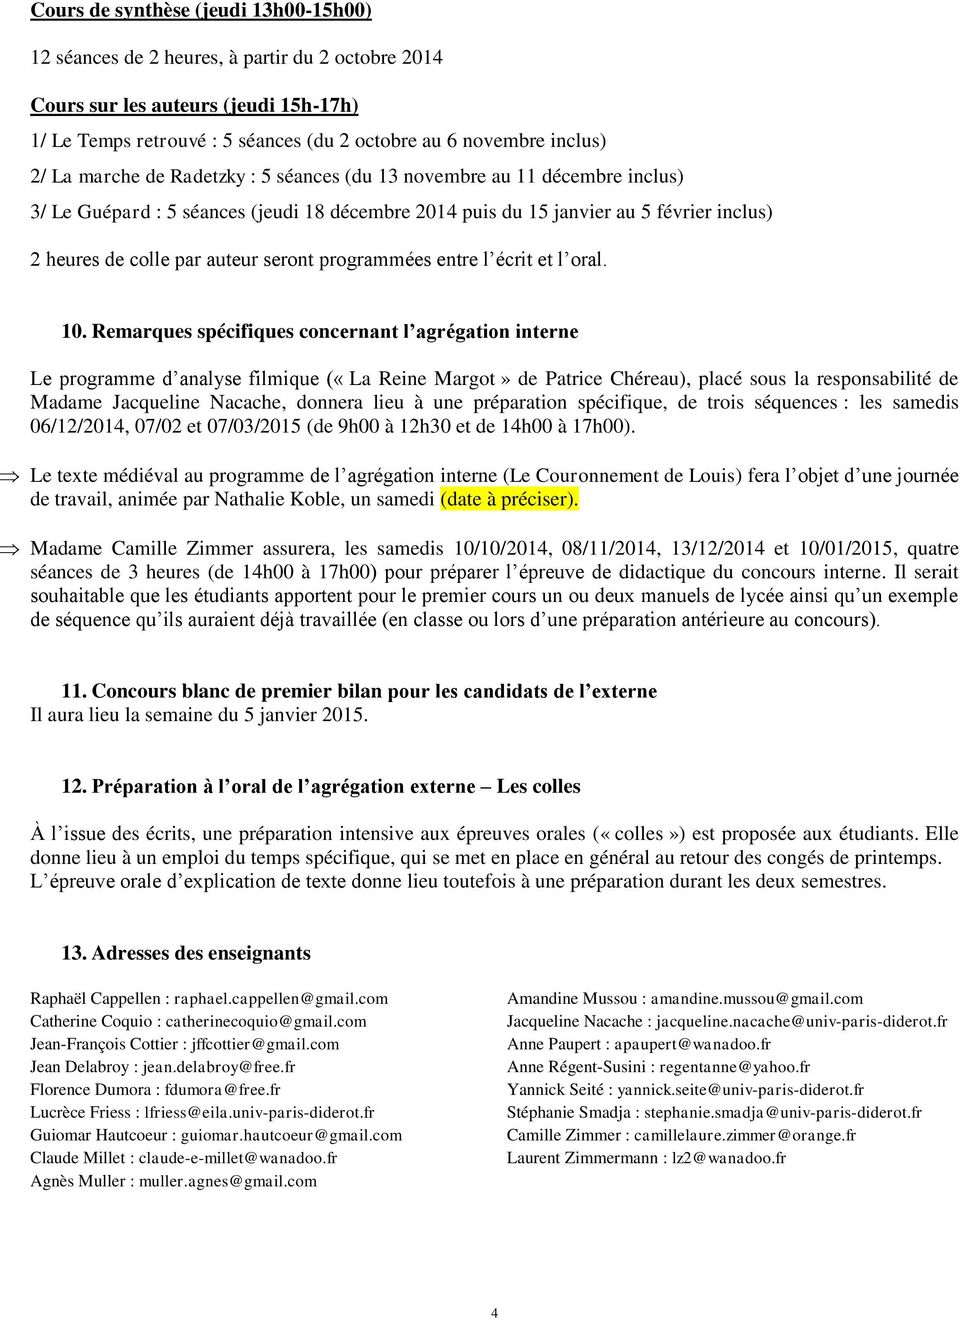 universit 201 diderot 7 ufr lac lettres arts cin 201 ma pdf